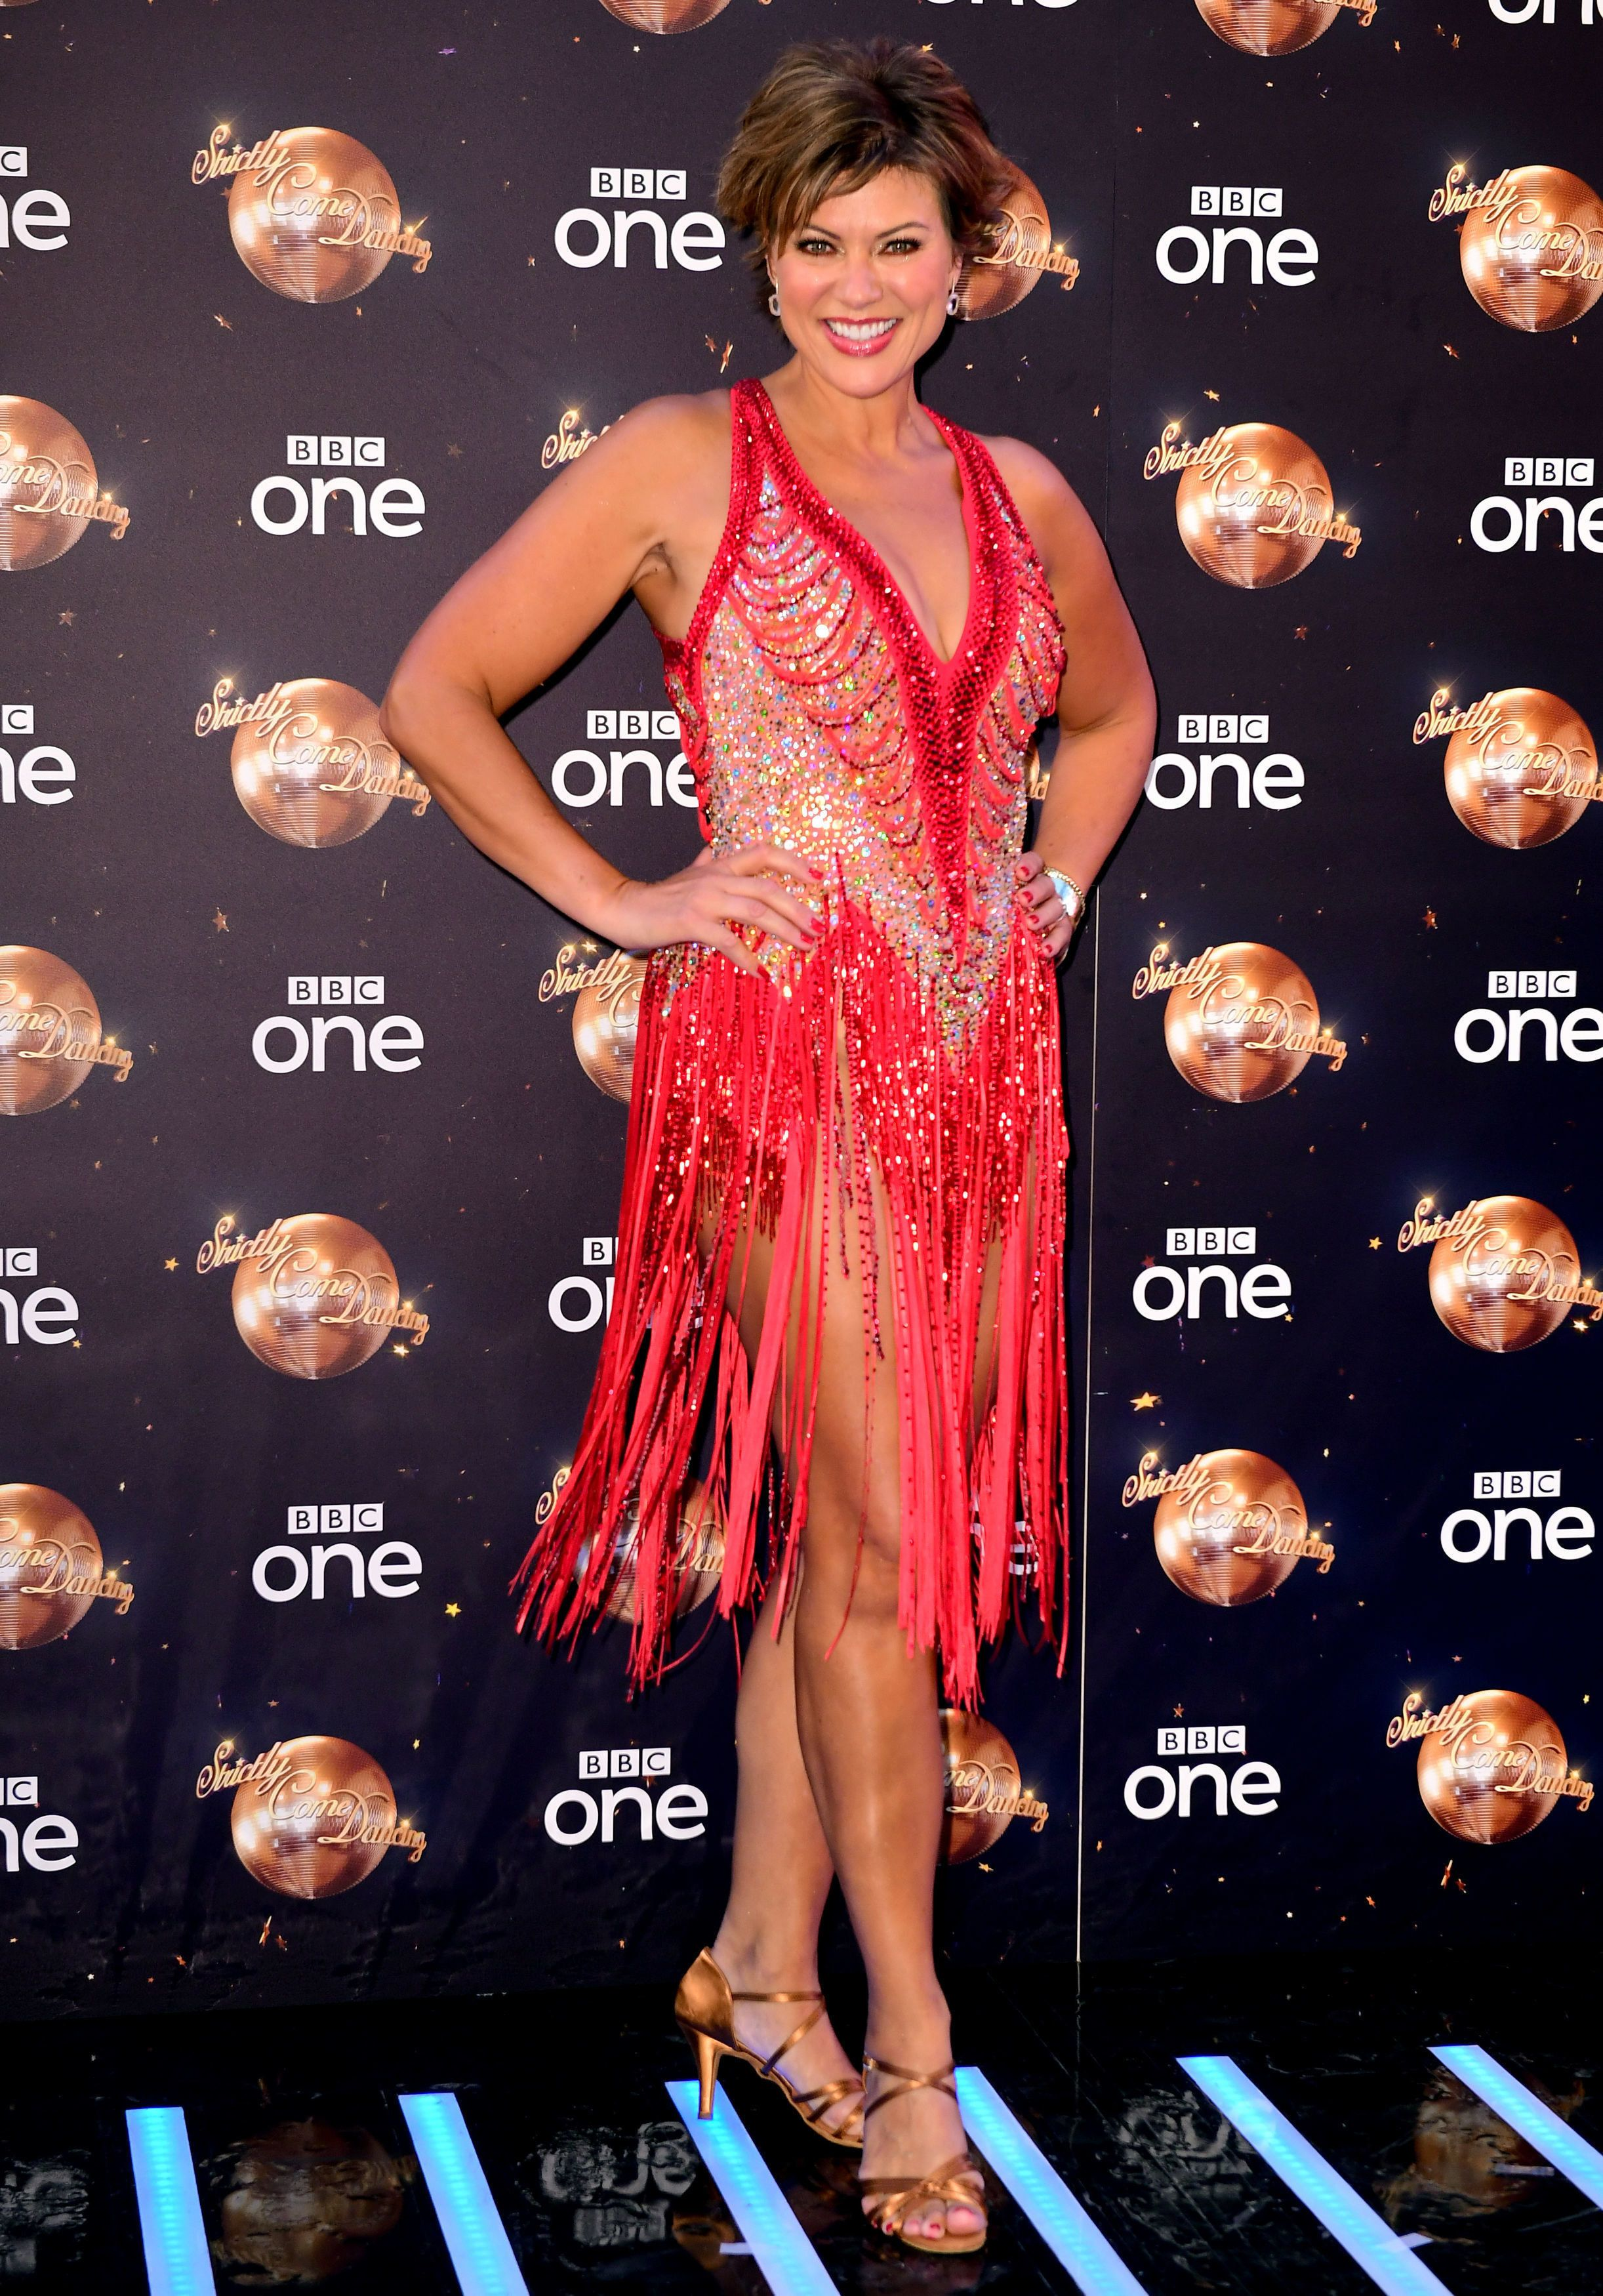 Strictly's Kate Silverton Vows To Dance Through Pain After Stripping Muscle On